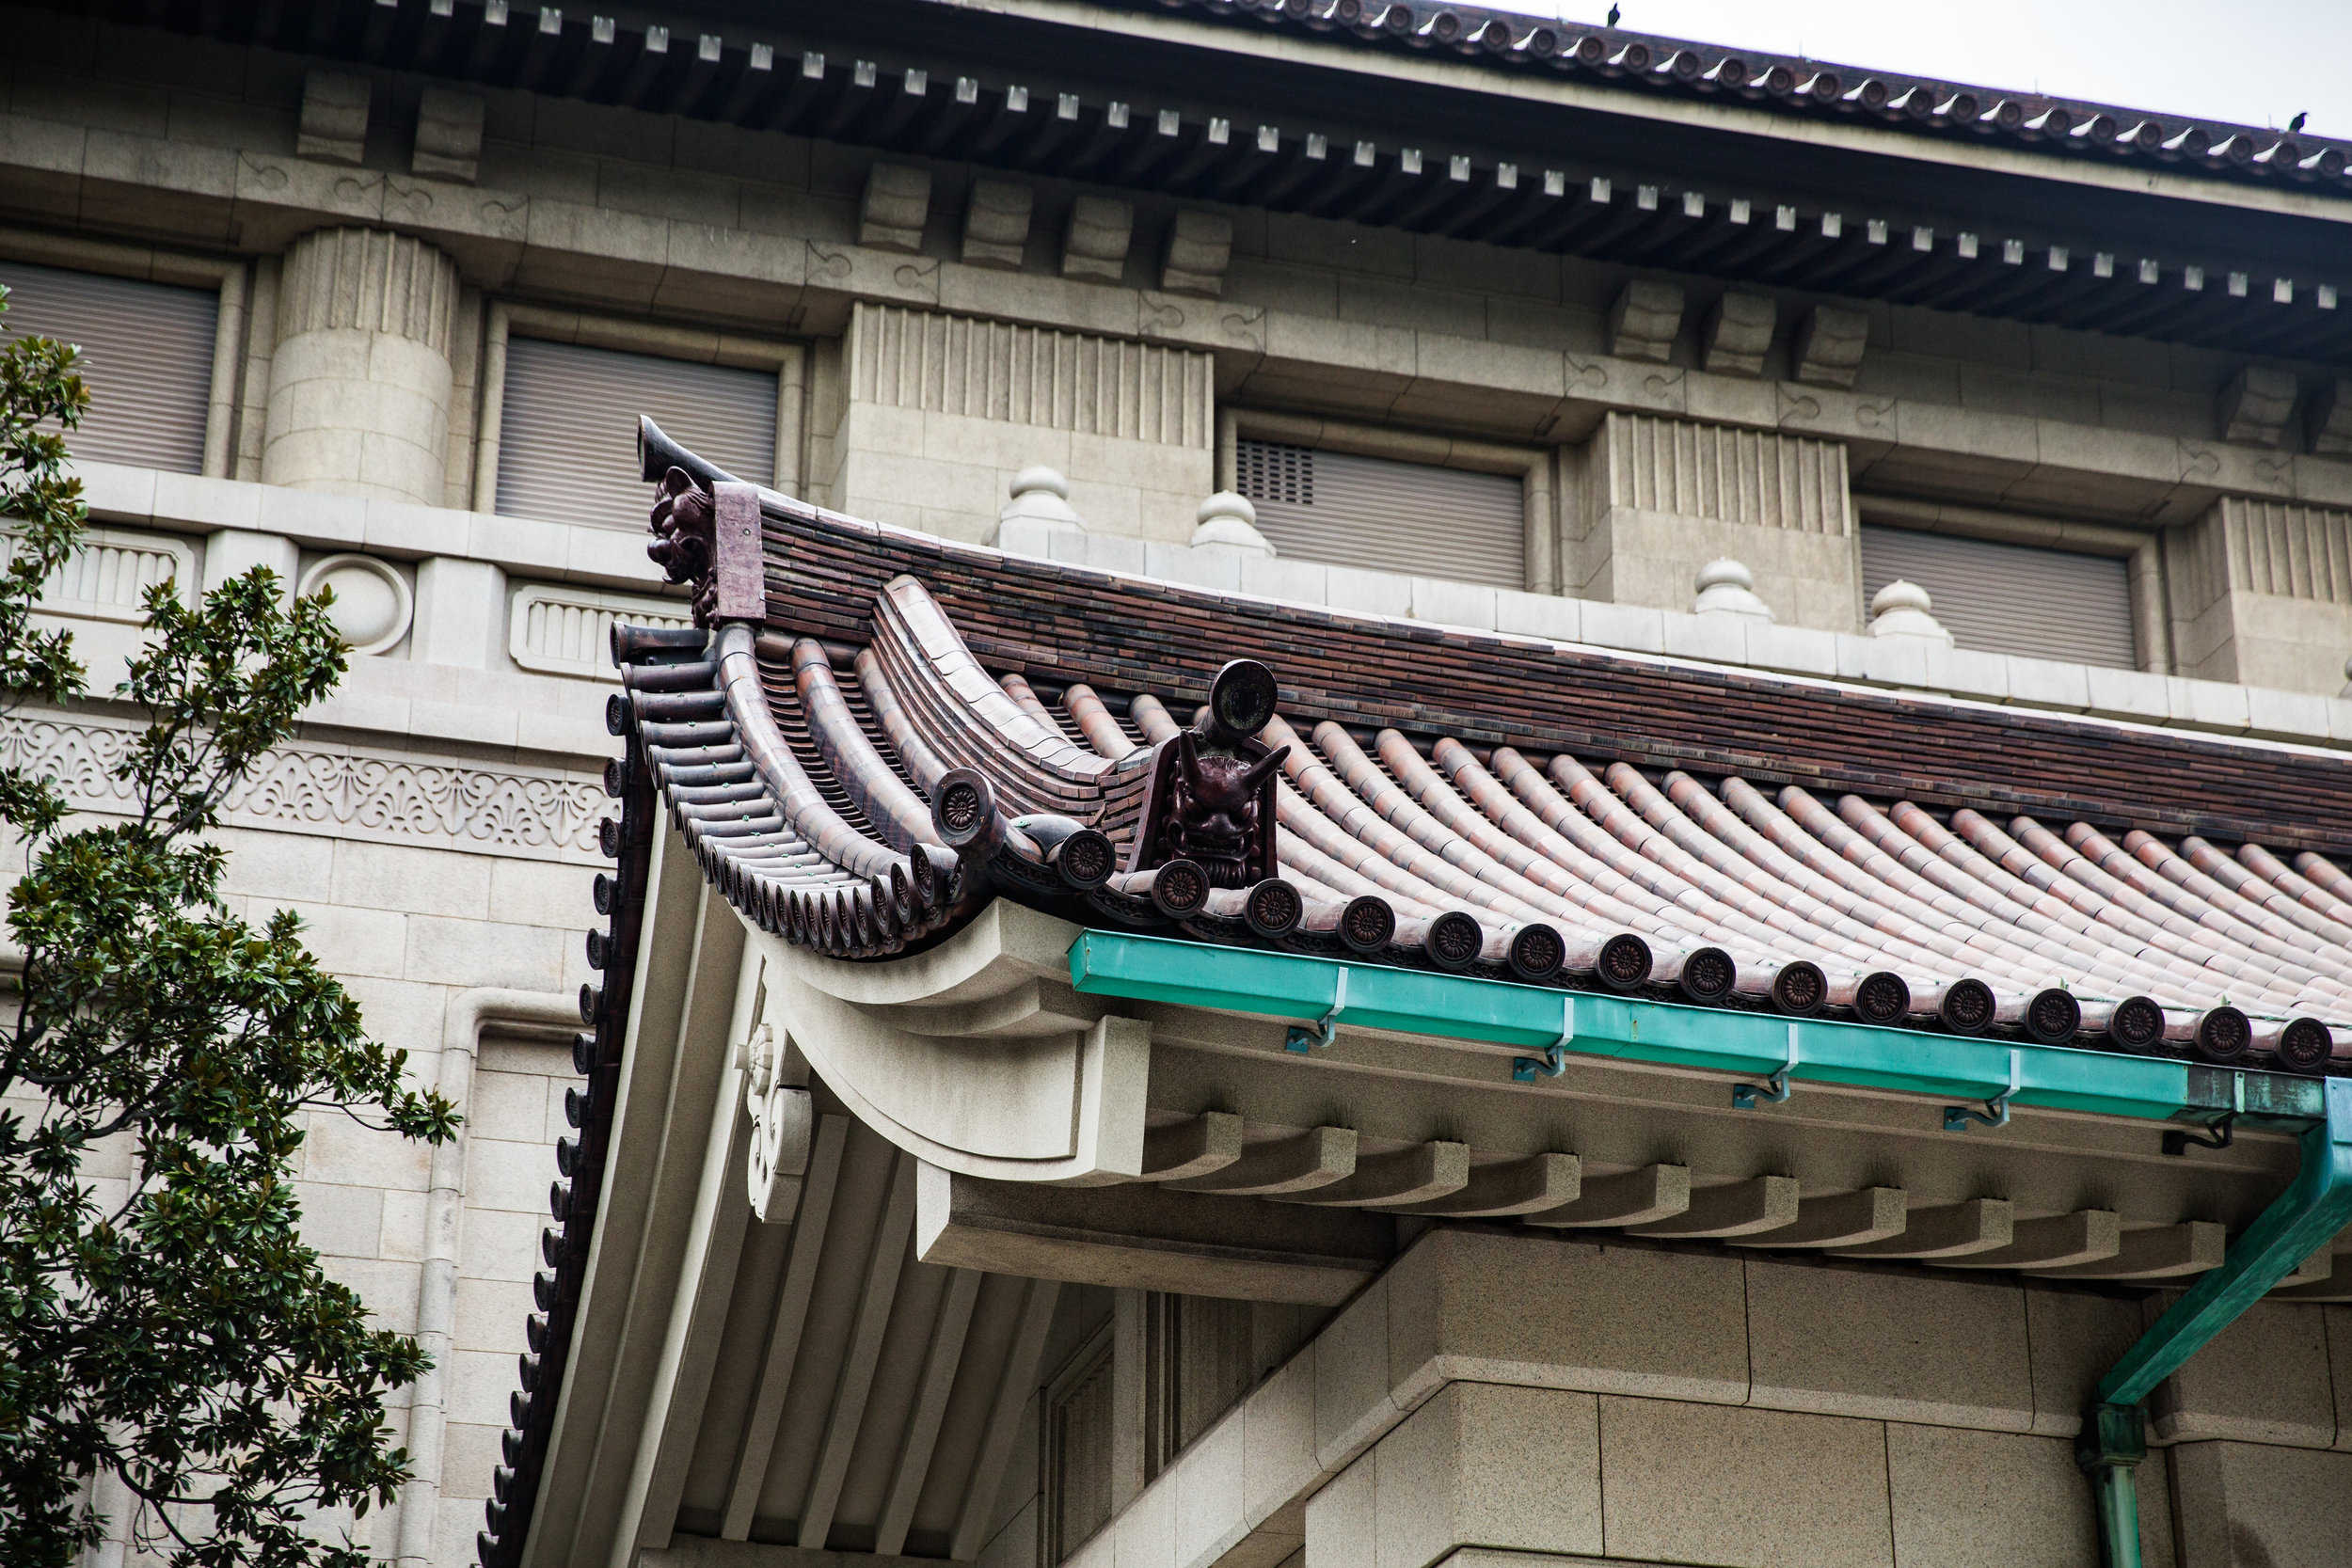 Established in 1872, the Tokyo National Museum is one of the largest art museums in the world. Focusing on ancient Japanese and Asian art from along the Silk Road, it also contains an substantial amount of Greco-Buddhist art. This was taken outside the Honkan building.